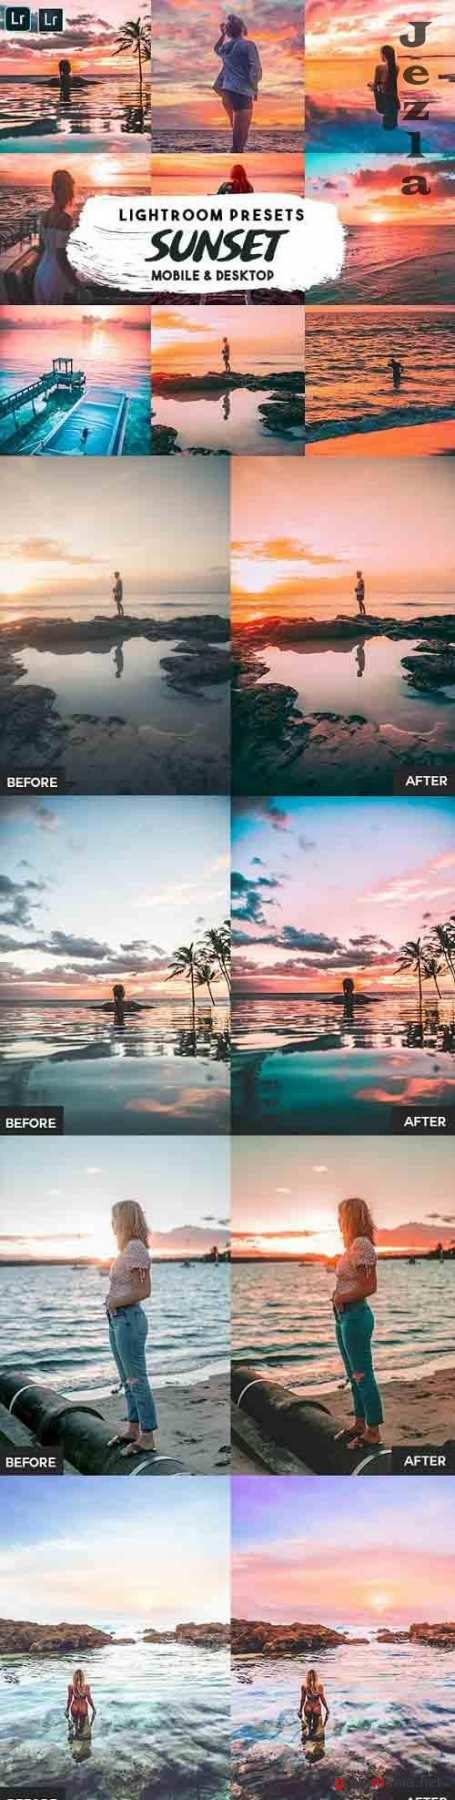 Sunset Lightroom Presets - 30246908